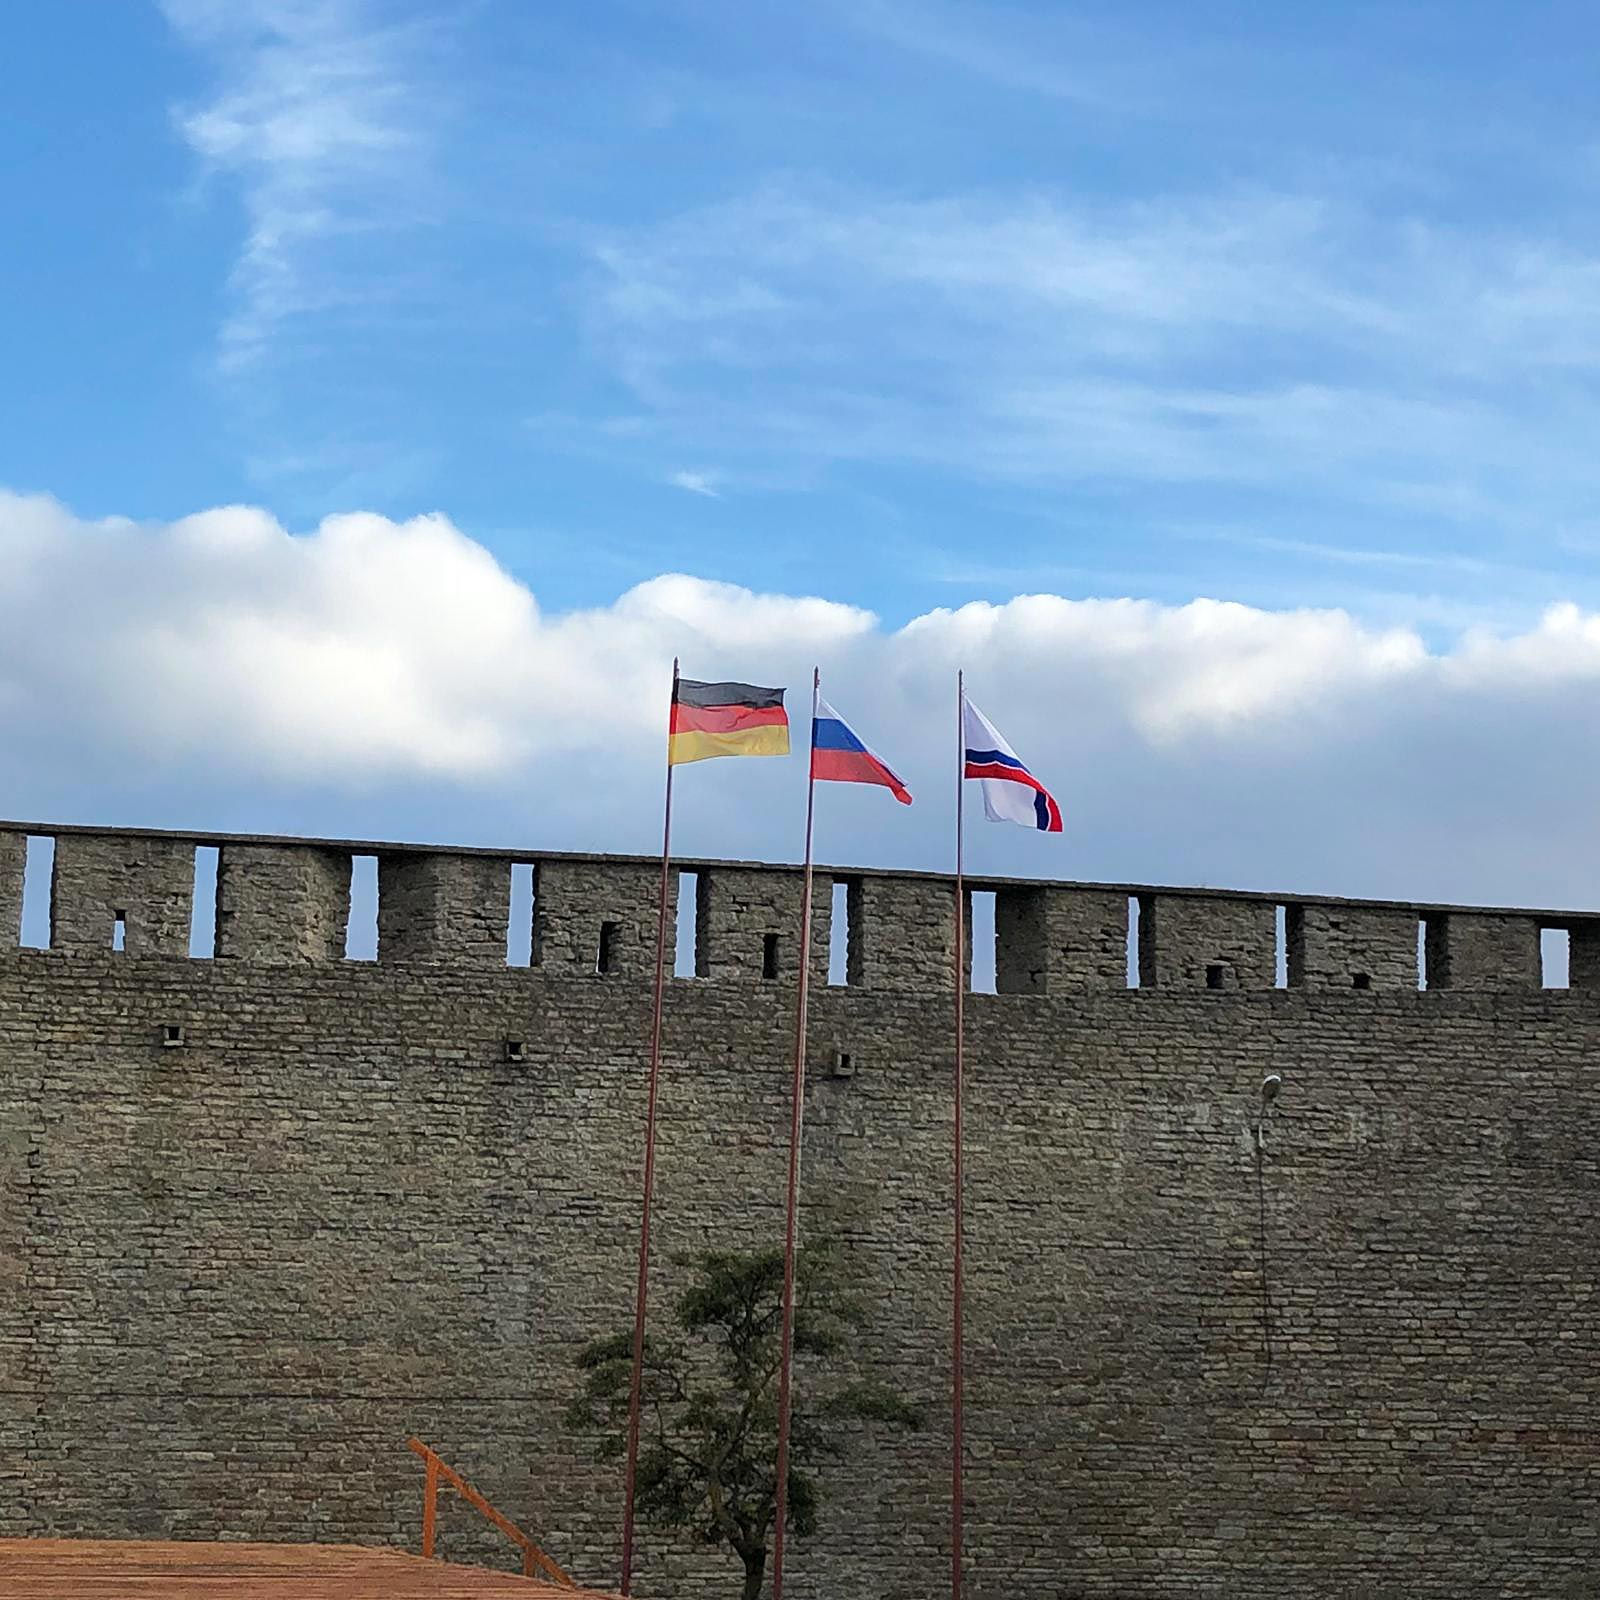 Fahnen - Titanen on tour in Russland